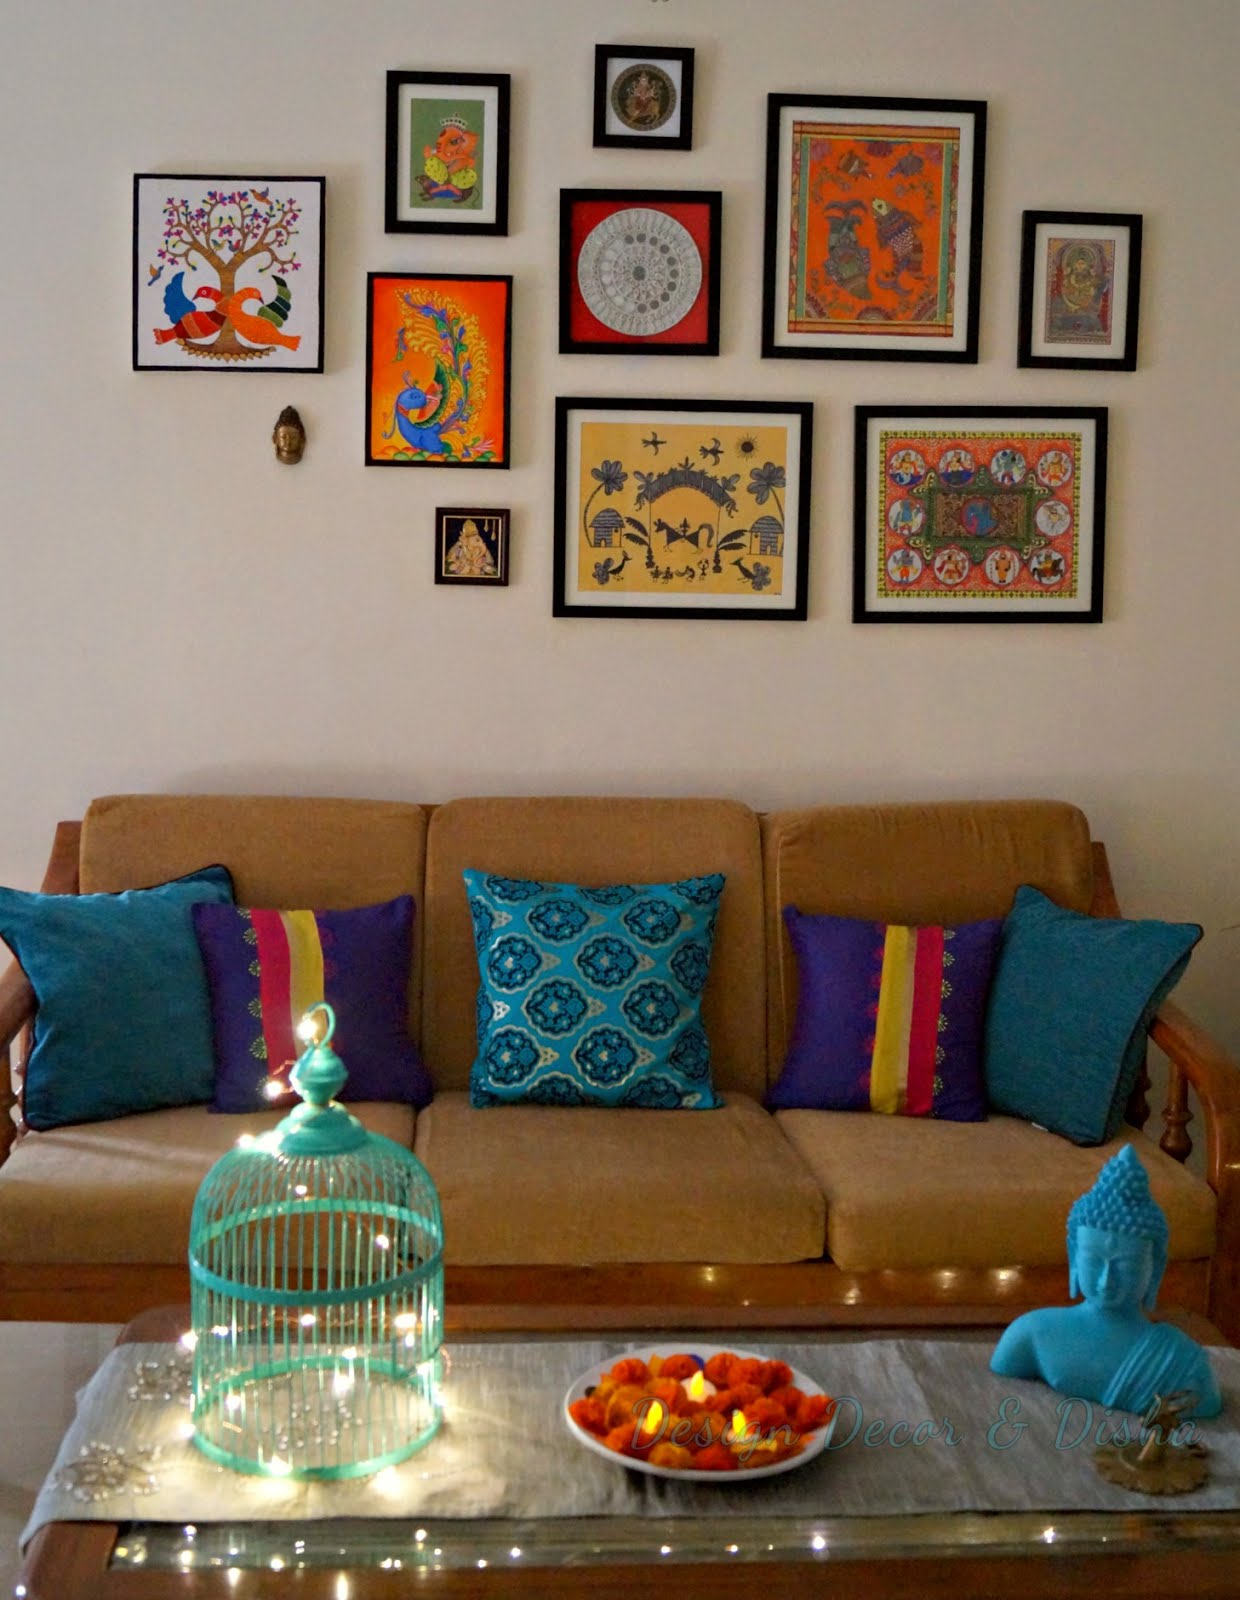 Design Decor Disha An Indian Design Decor Blog Last